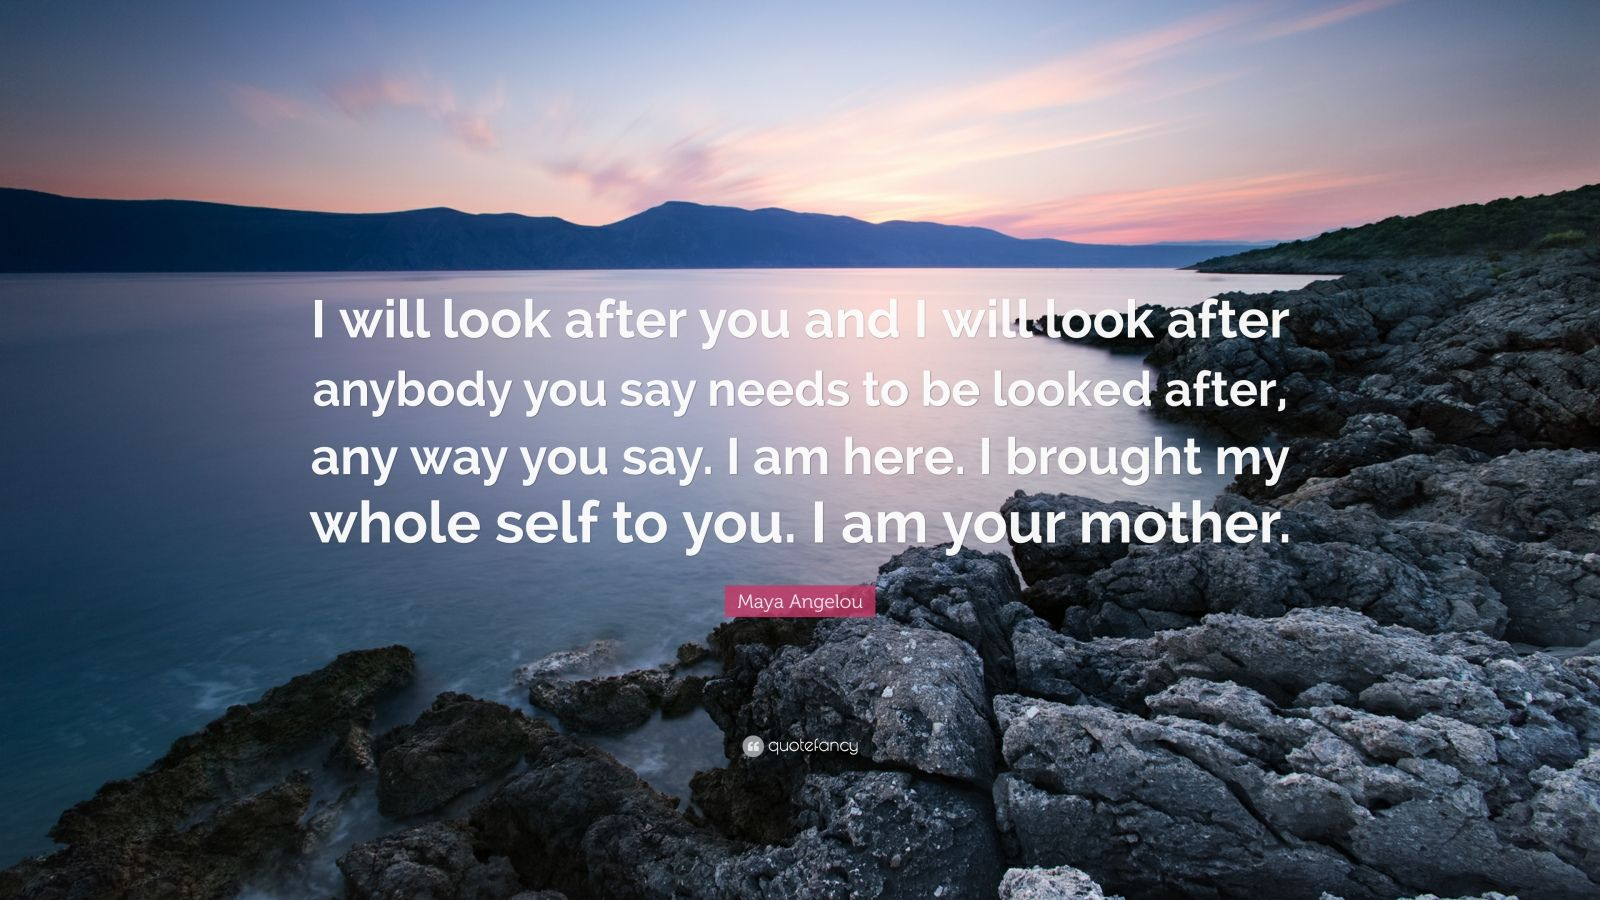 """Maya Angelou Quote: """"I will look after you and I will look after anybody you say needs to be looked after, any way you say. I am here. I brought my whole self to you. I am your mother."""""""